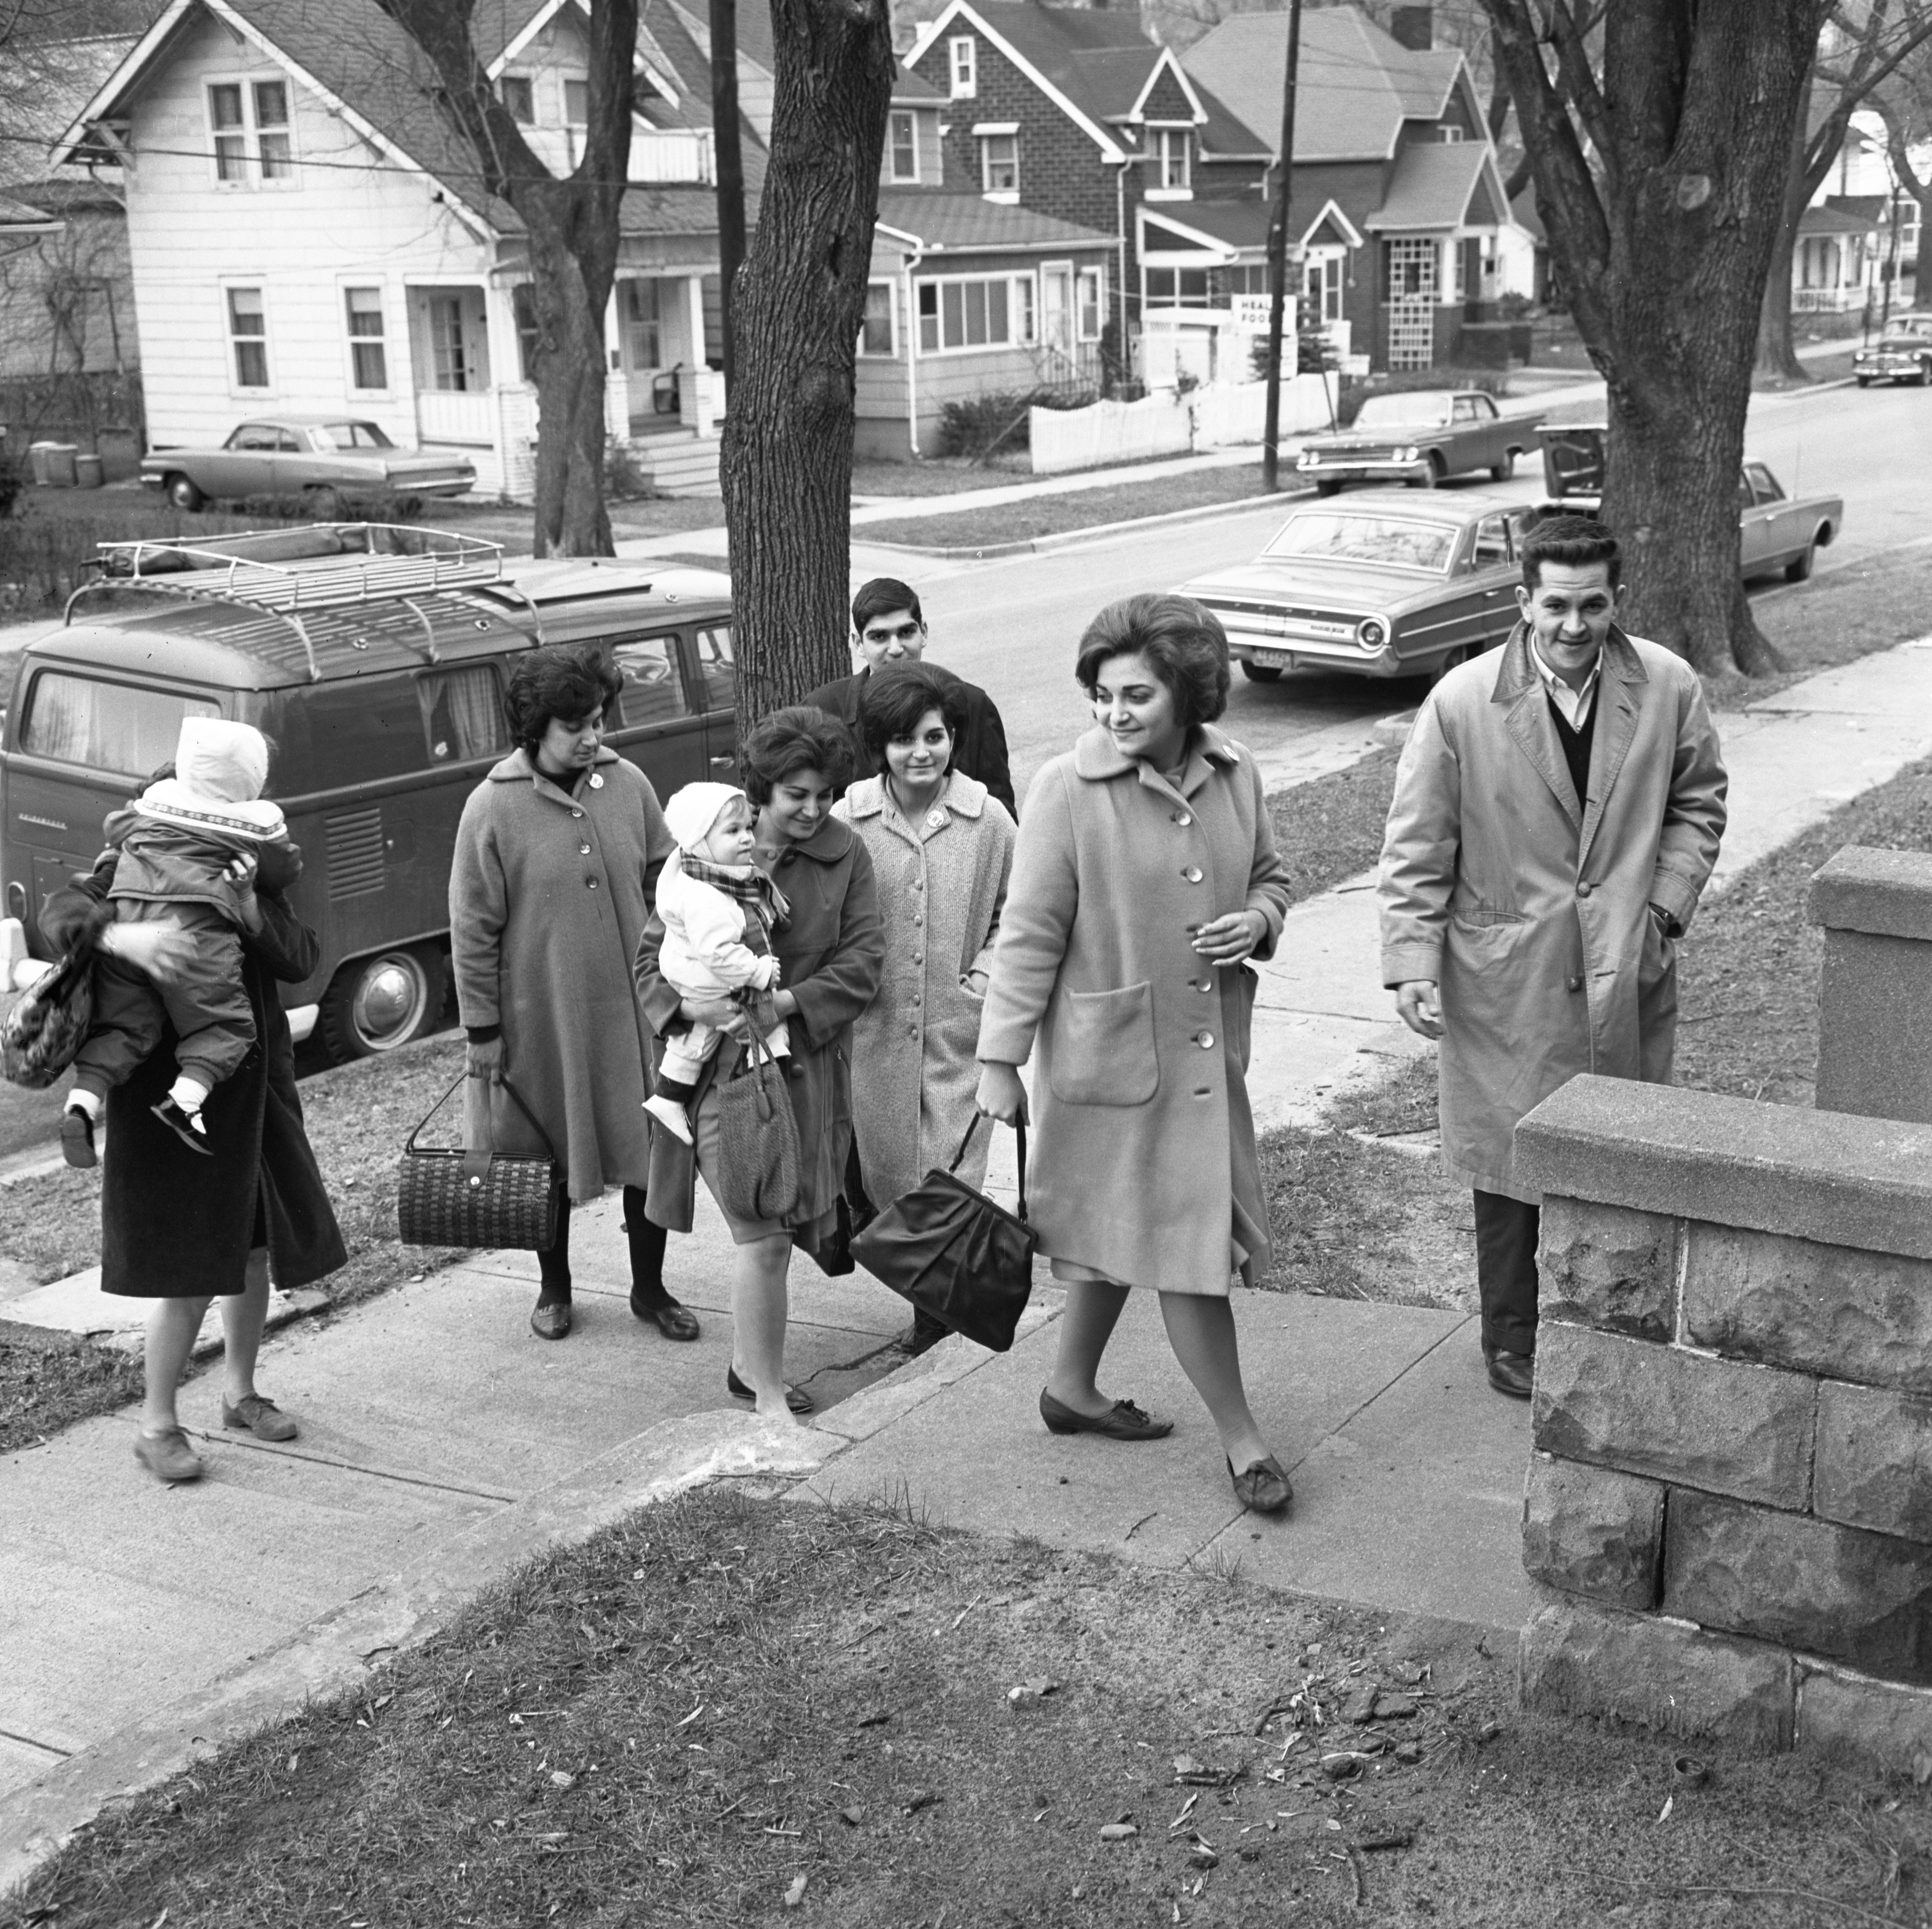 The Fornes Family, Cuban Refugees, Arrive At Their New Ann Arbor Home, December 1965 image